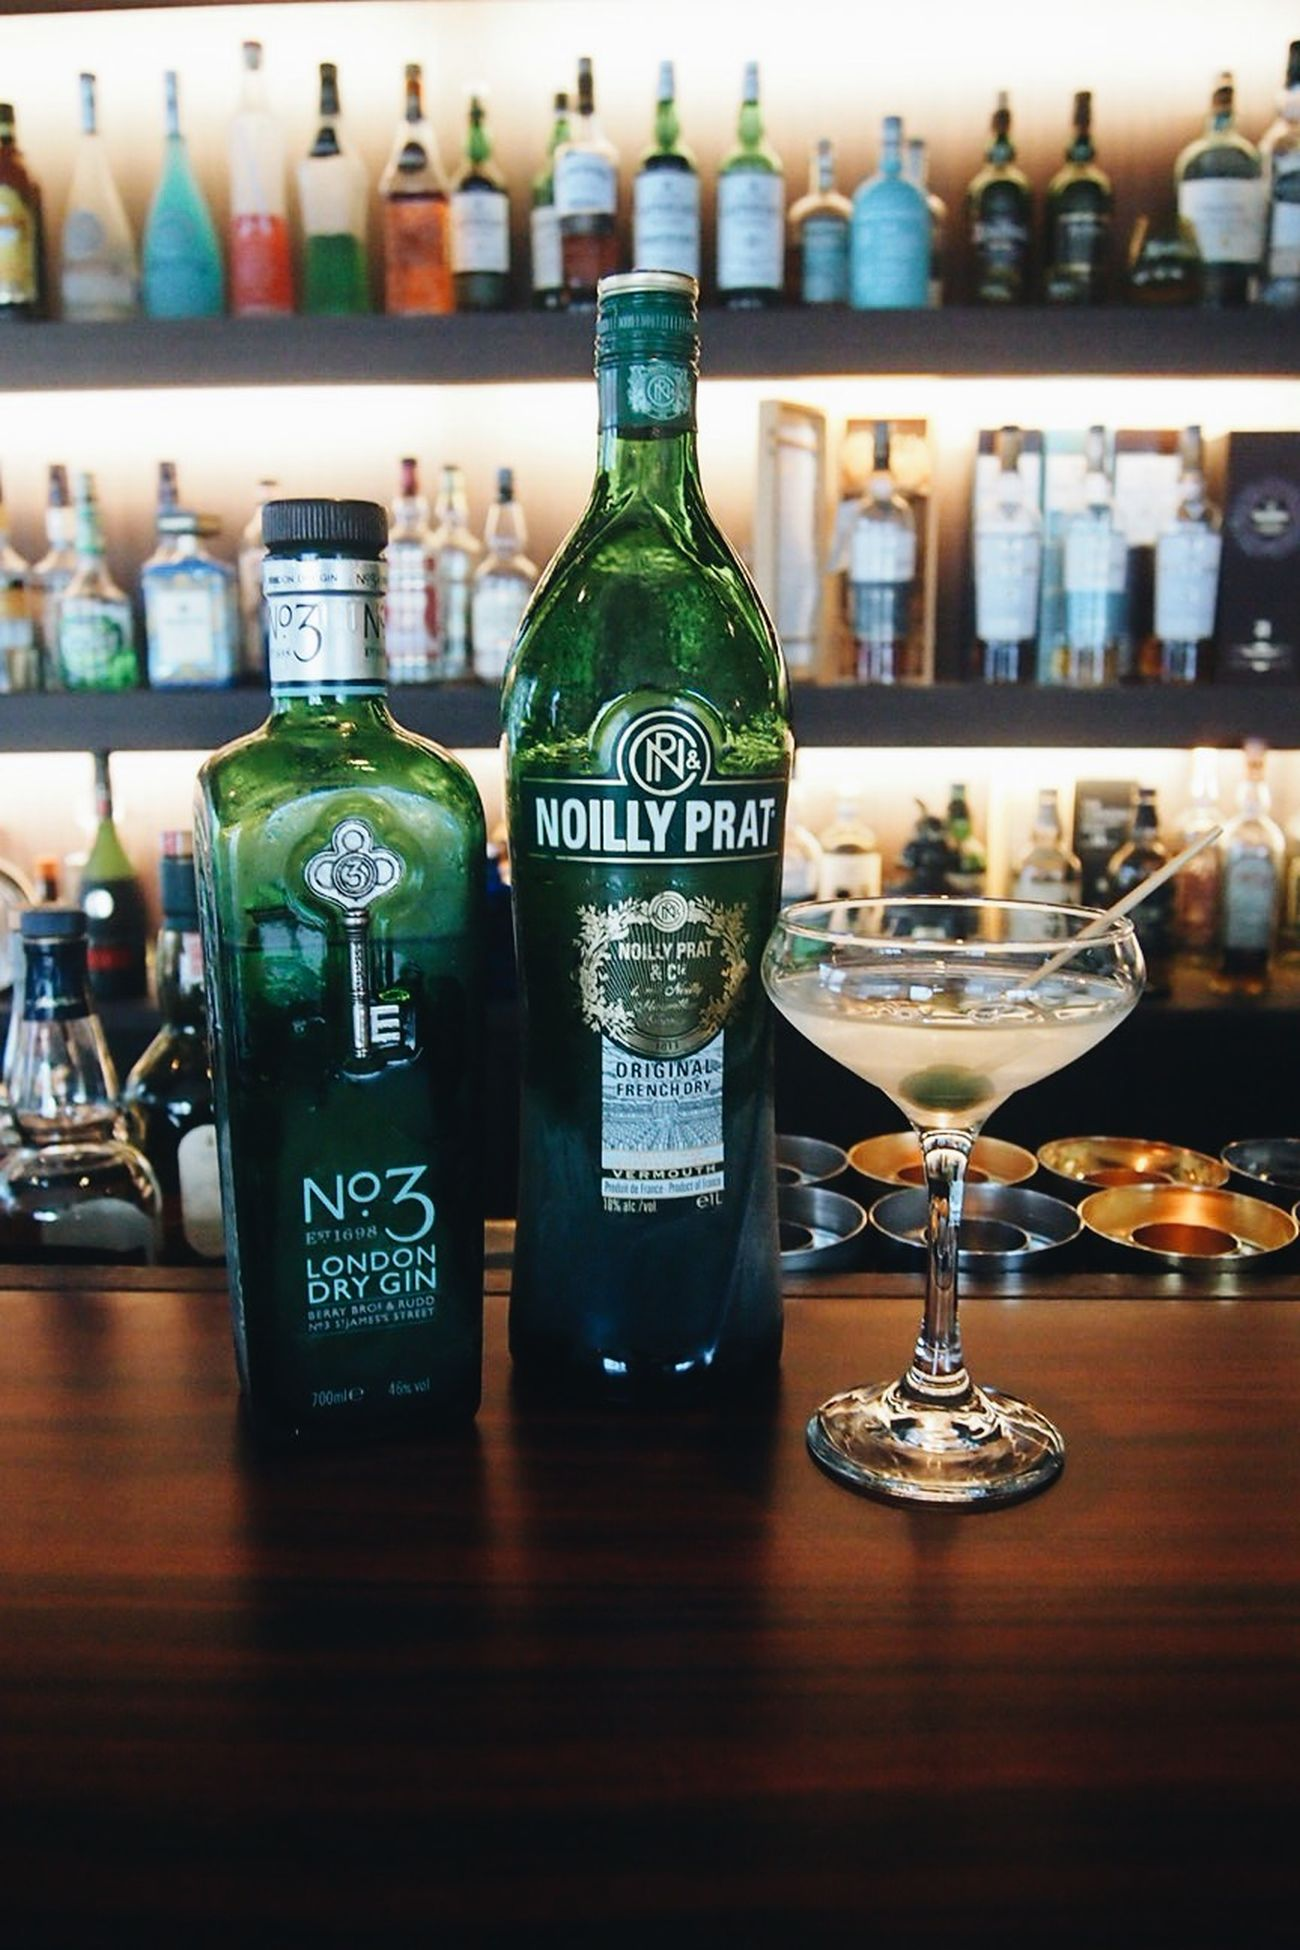 Dry Martini with No3 gin + Noilly Prat vermouth Drinks GIN Cocktails Cafe Louis Drymartini No.3 Gin Noilly Prat